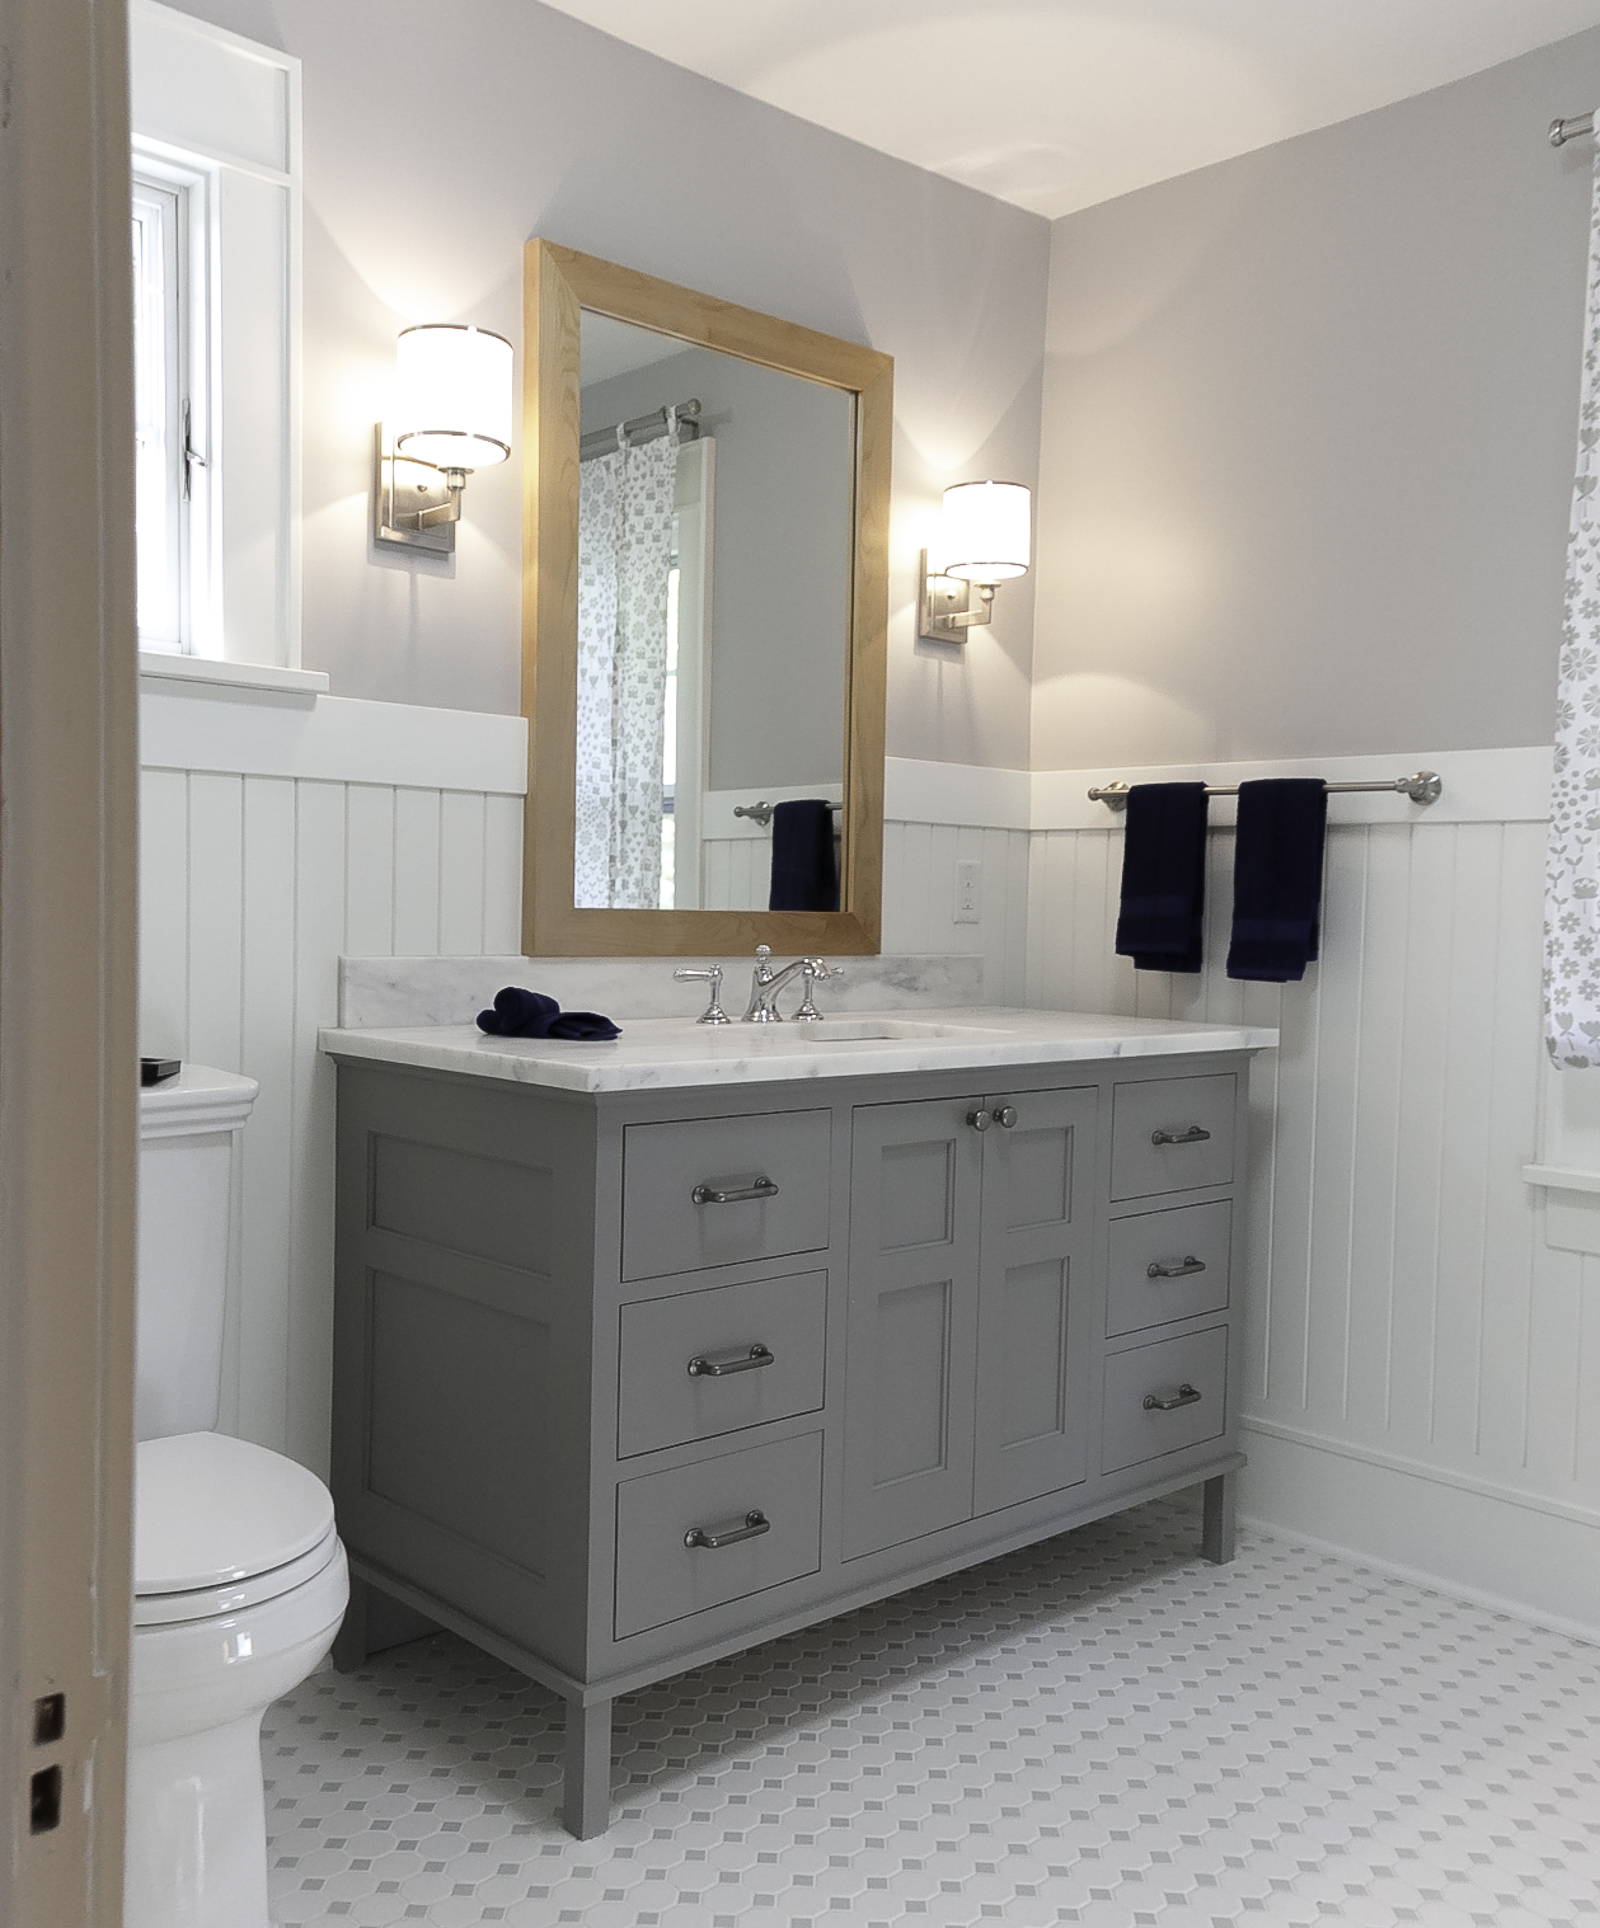 the bathroom vanity was built with shaker style doors and inset